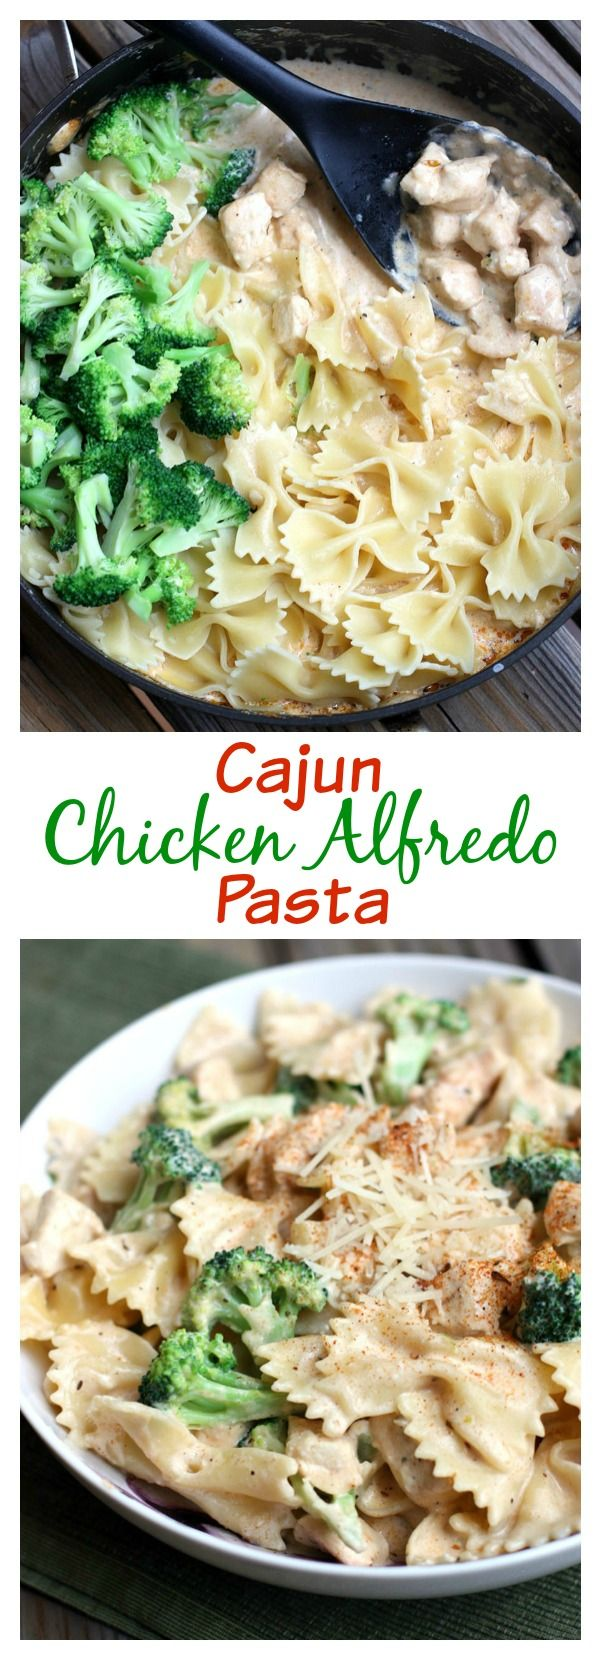 Cajun Chicken Alfredo Pasta makes the easiest 30-minute meal! On MyRecipeMagic.com